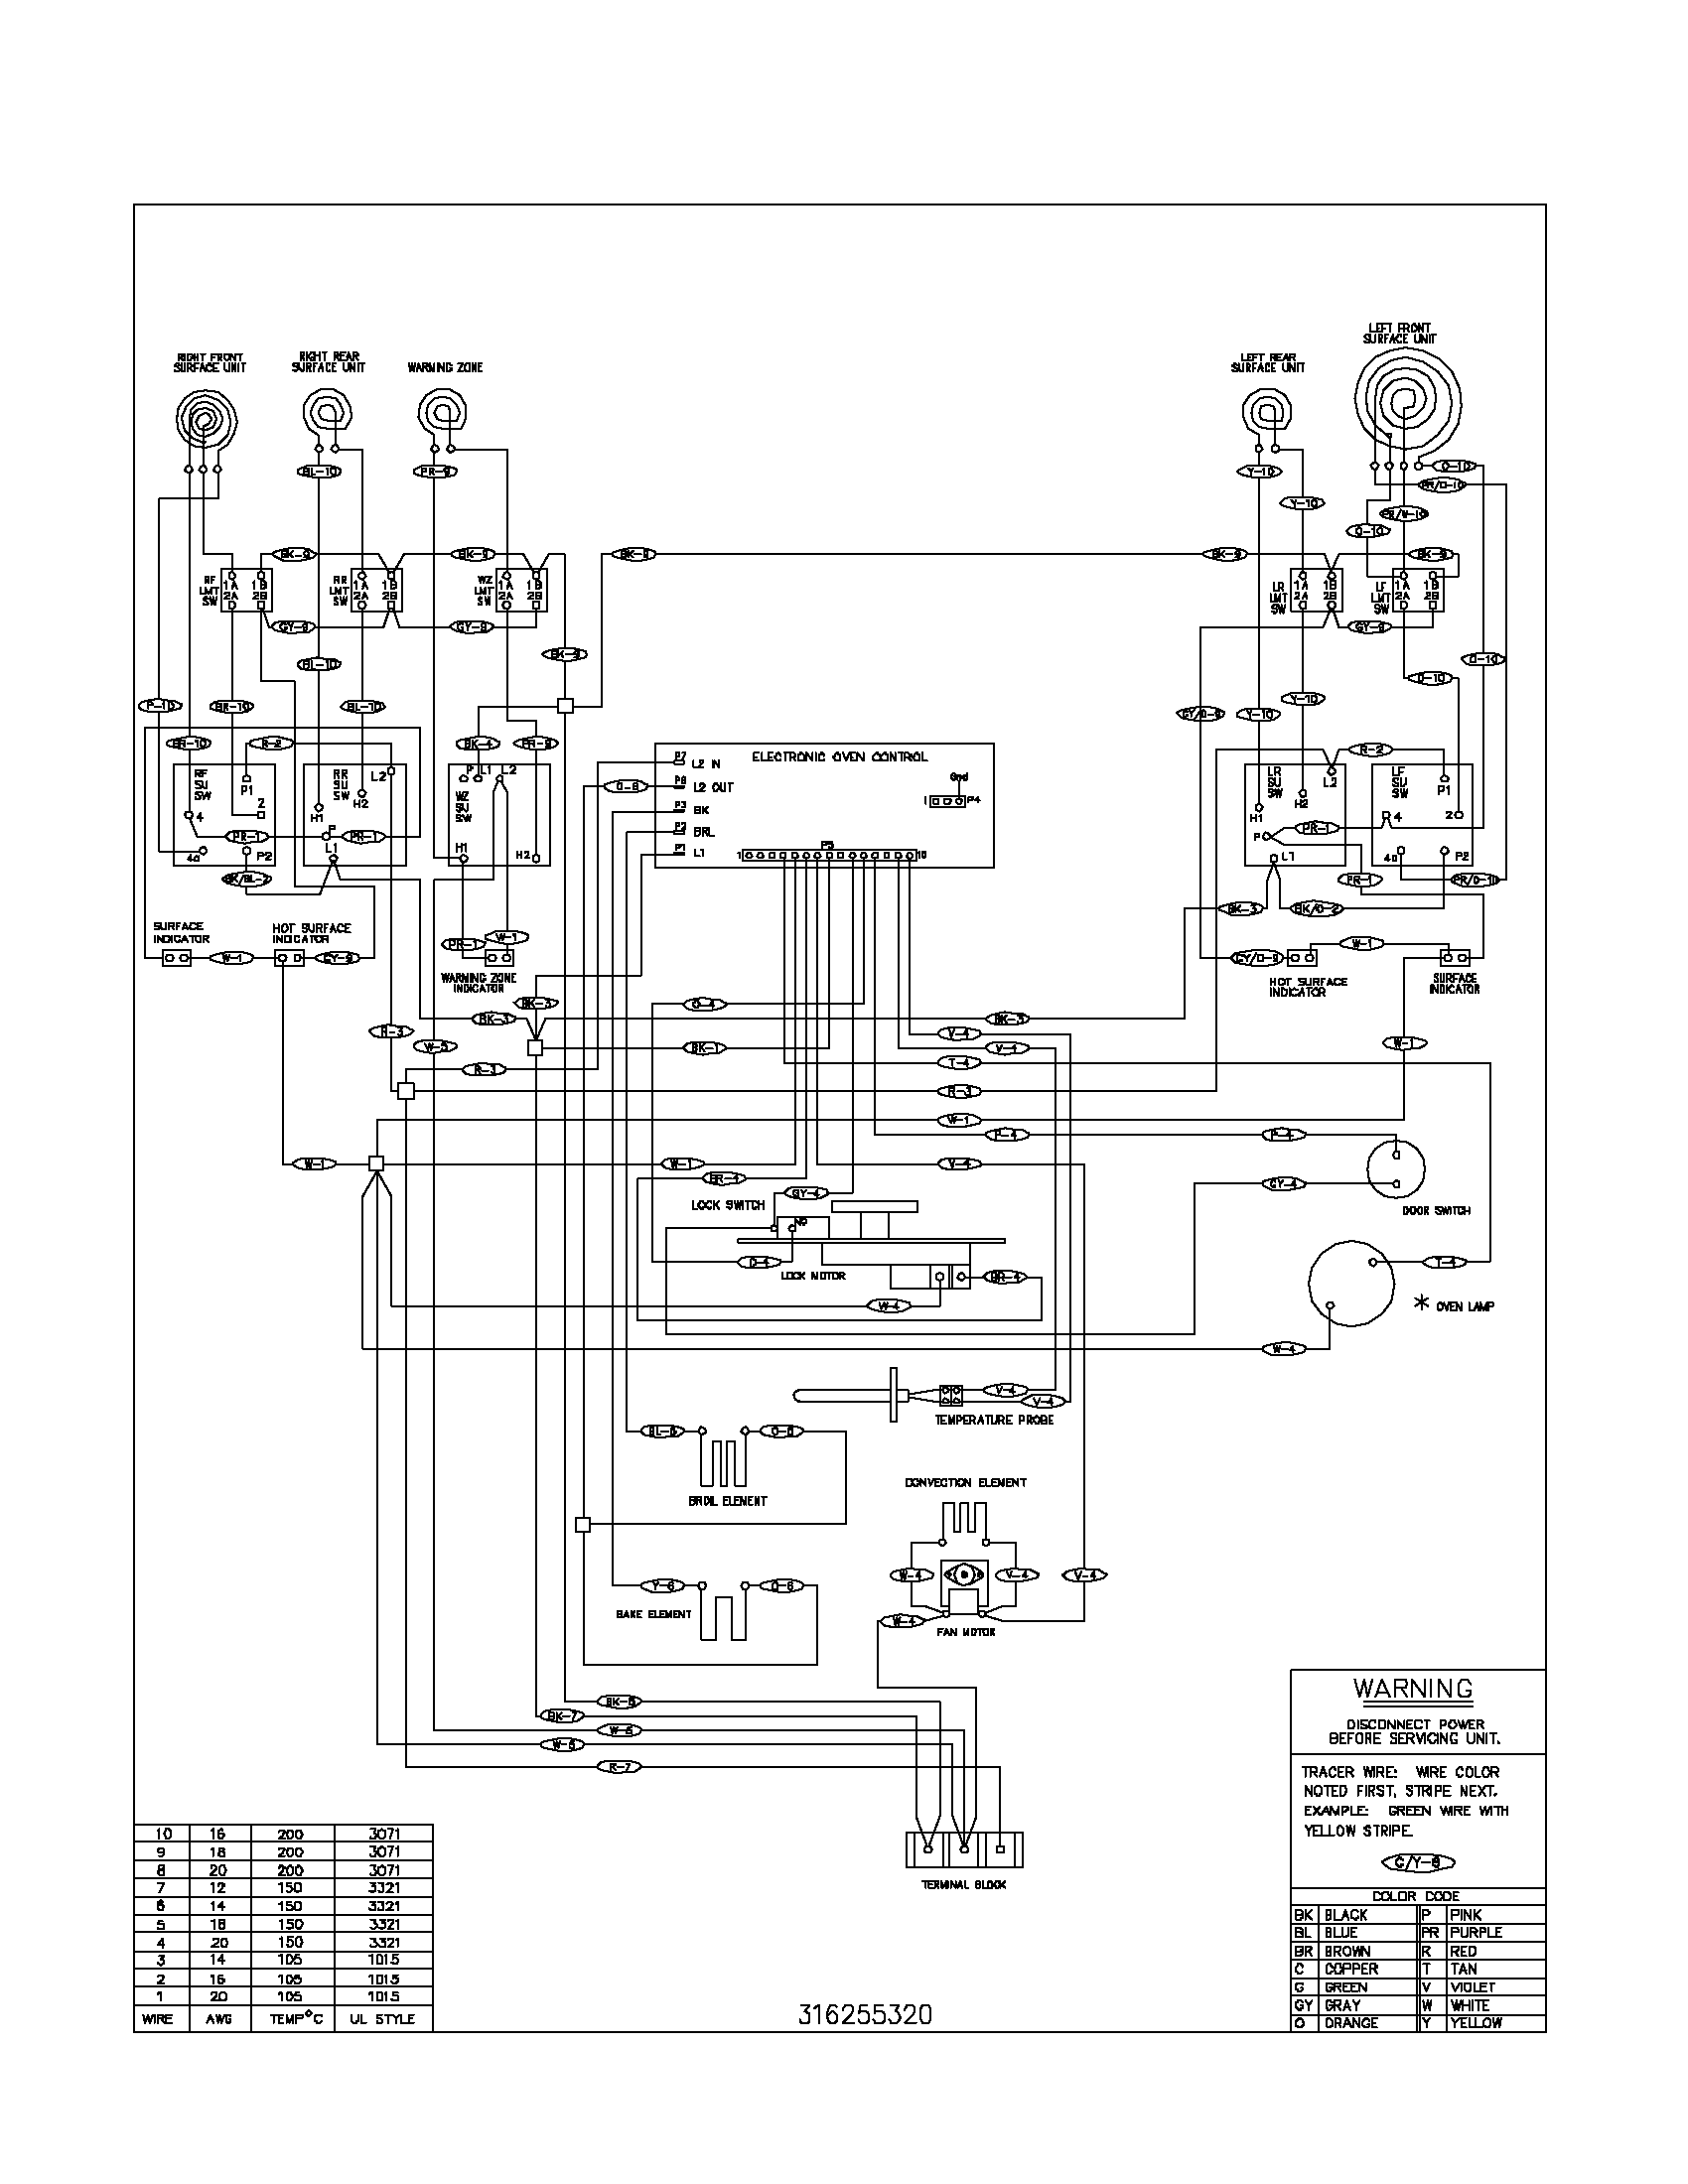 wiring diagram parts whirlpool fefl88acc electric range timer stove clocks and Rheem Thermostat Wiring at gsmportal.co